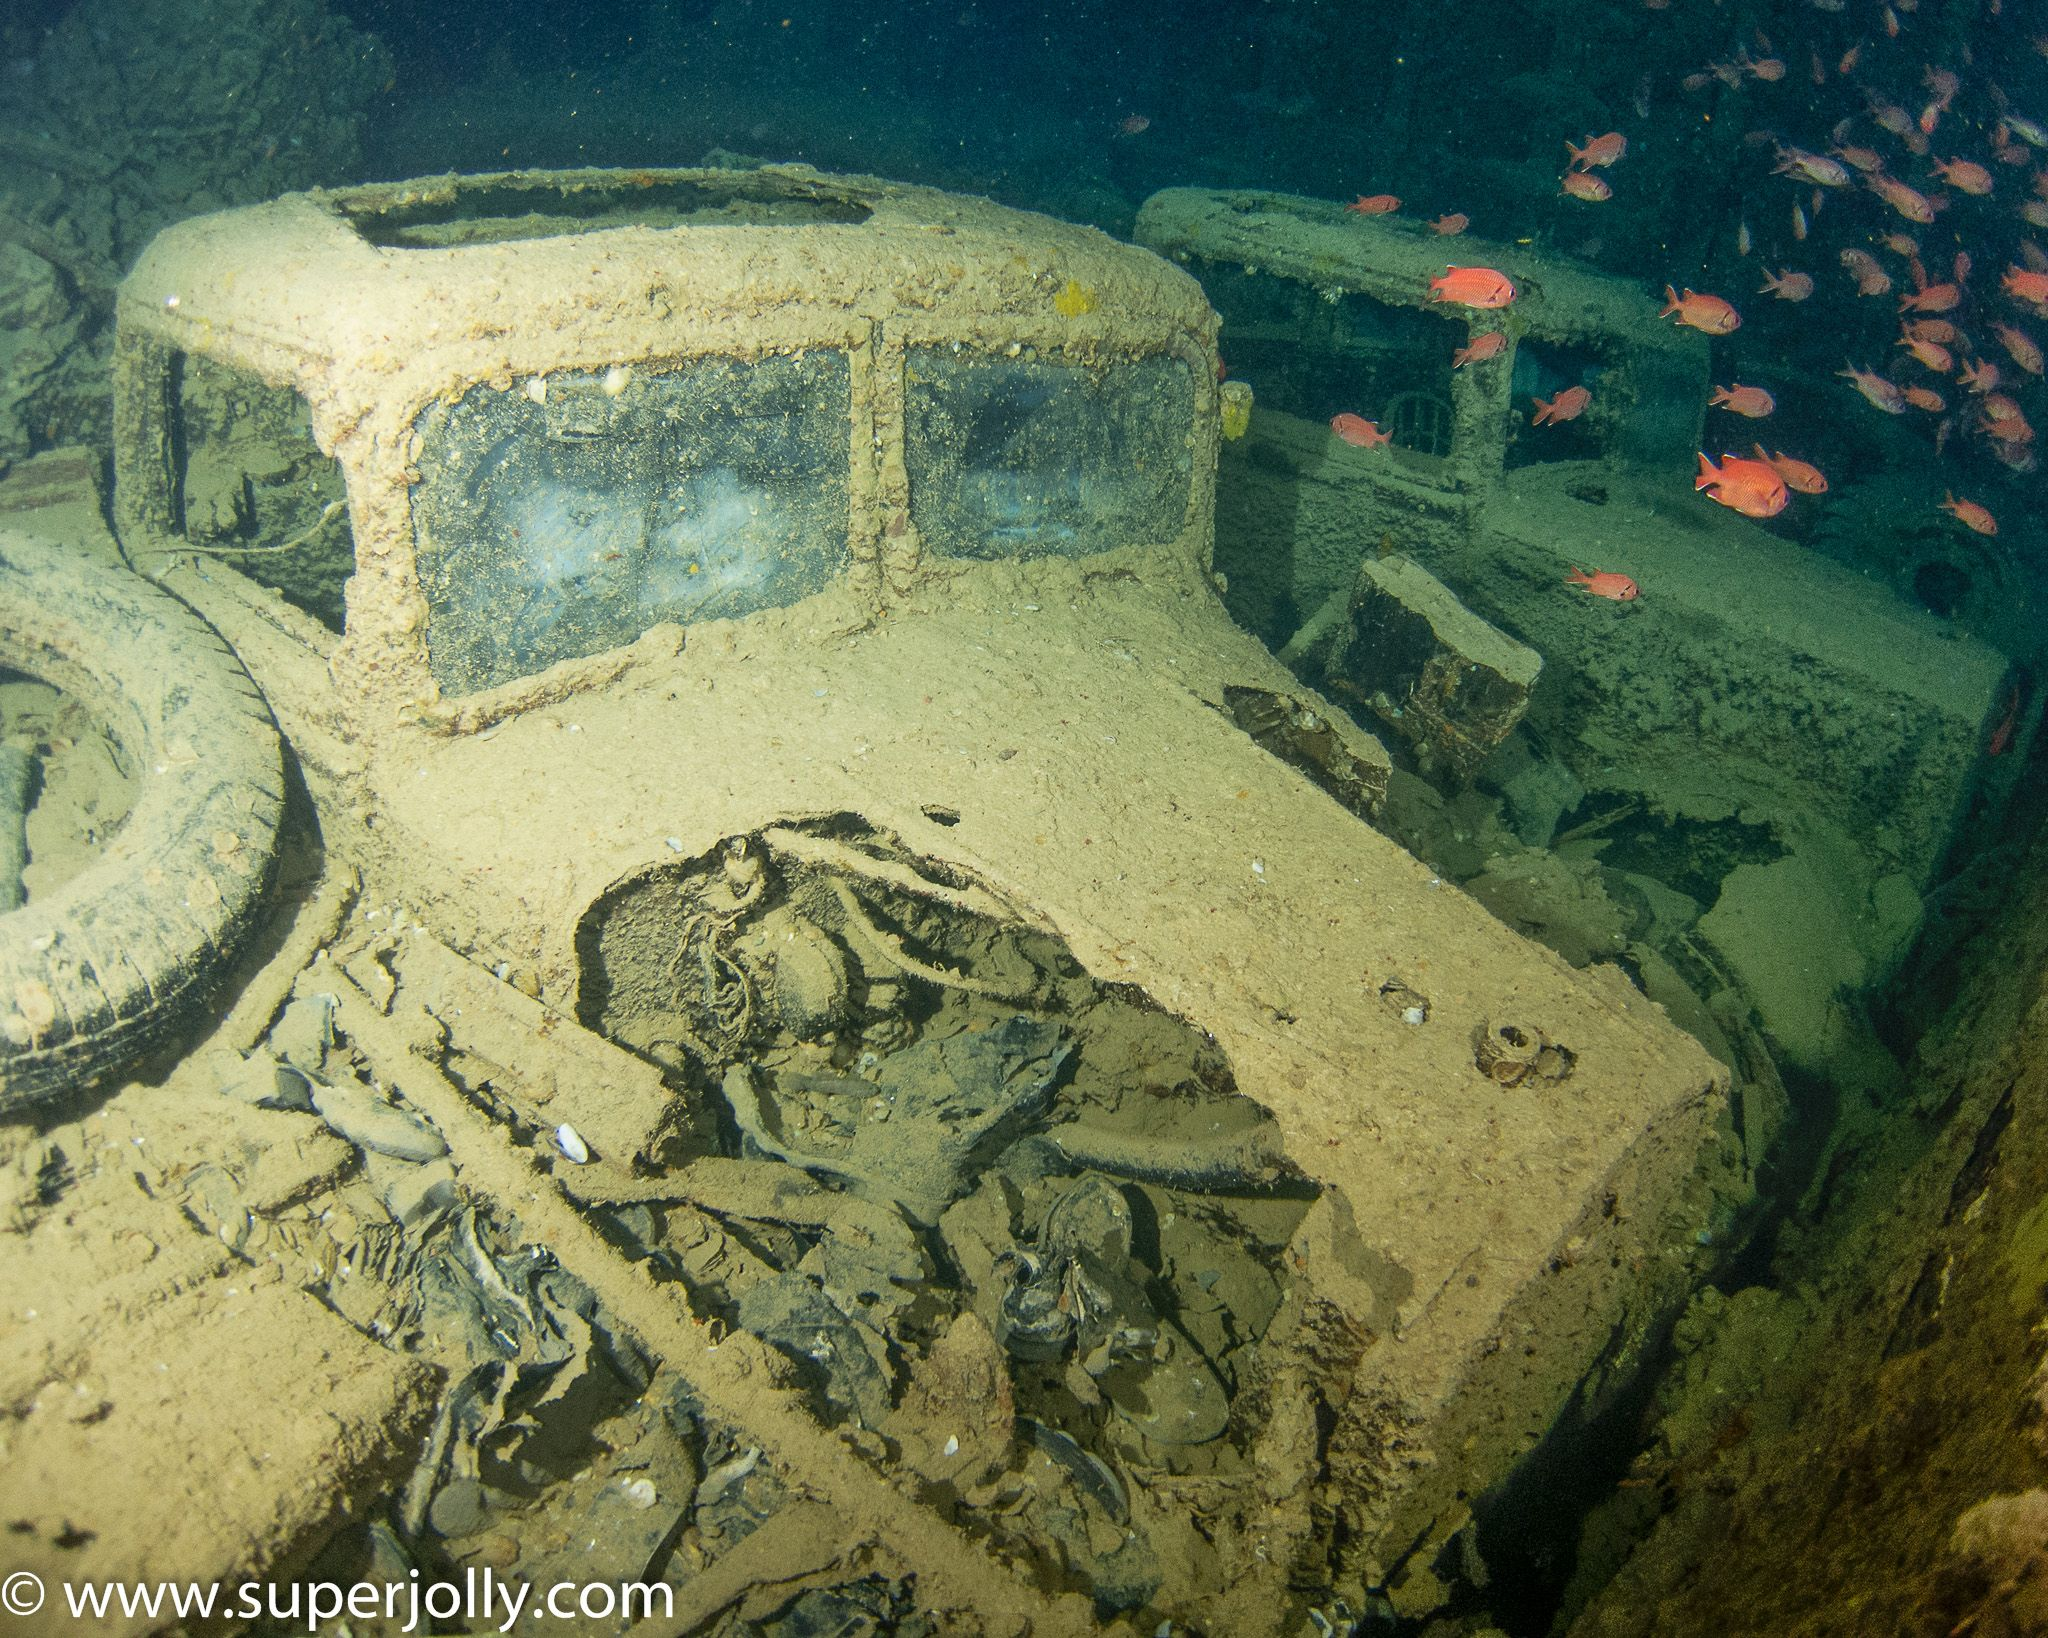 Wreck Of The Ss Thistlegorm In The Egyptian Red Sea Sunk